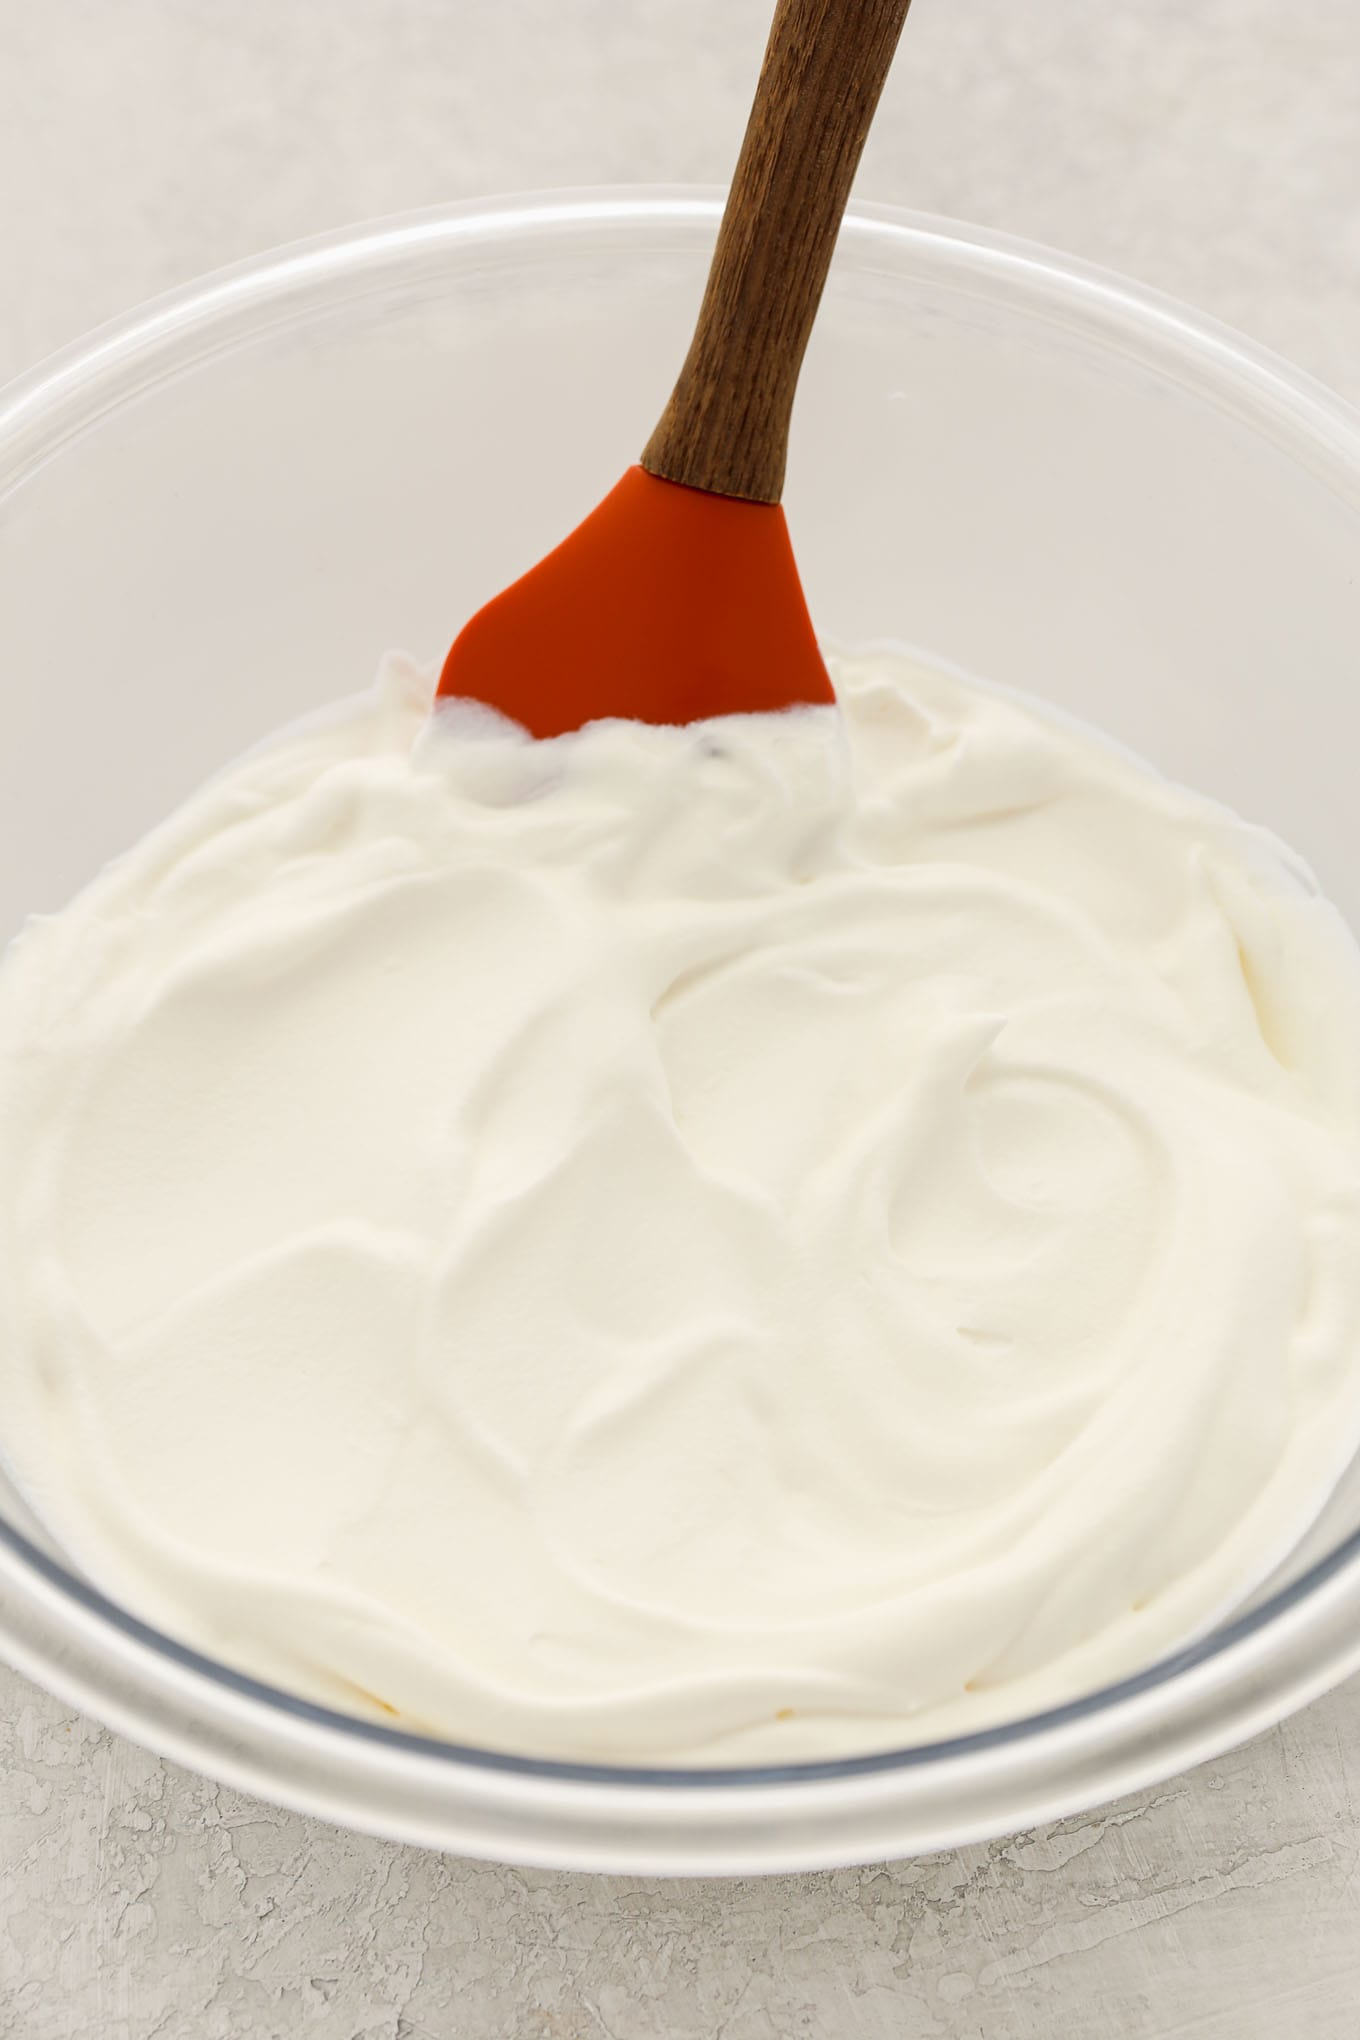 A glass bowl filled with homemade whipped cream and a rubber spatula in it.